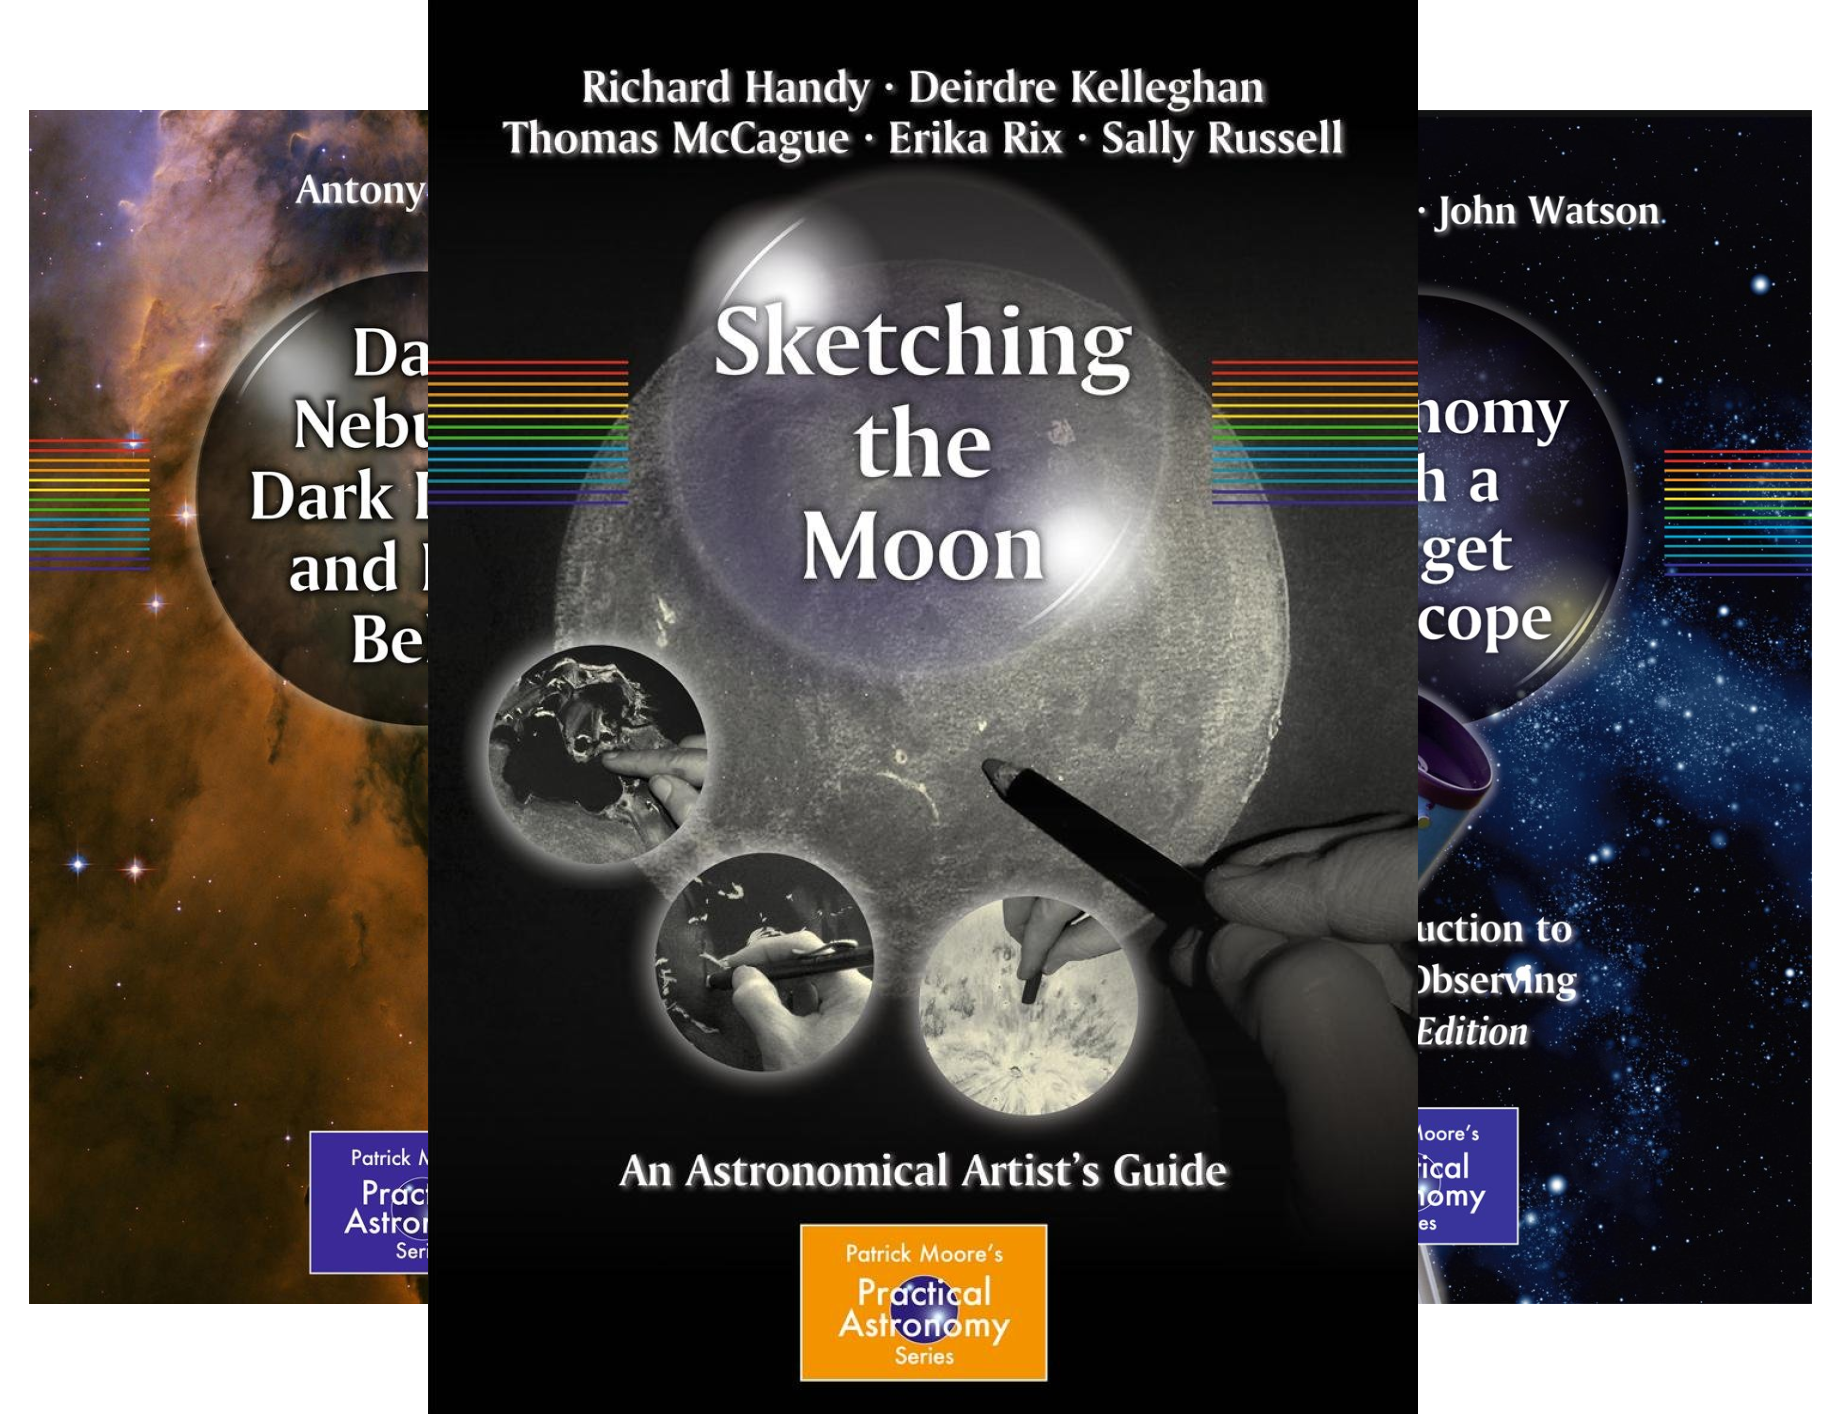 The Patrick Moore Practical Astronomy